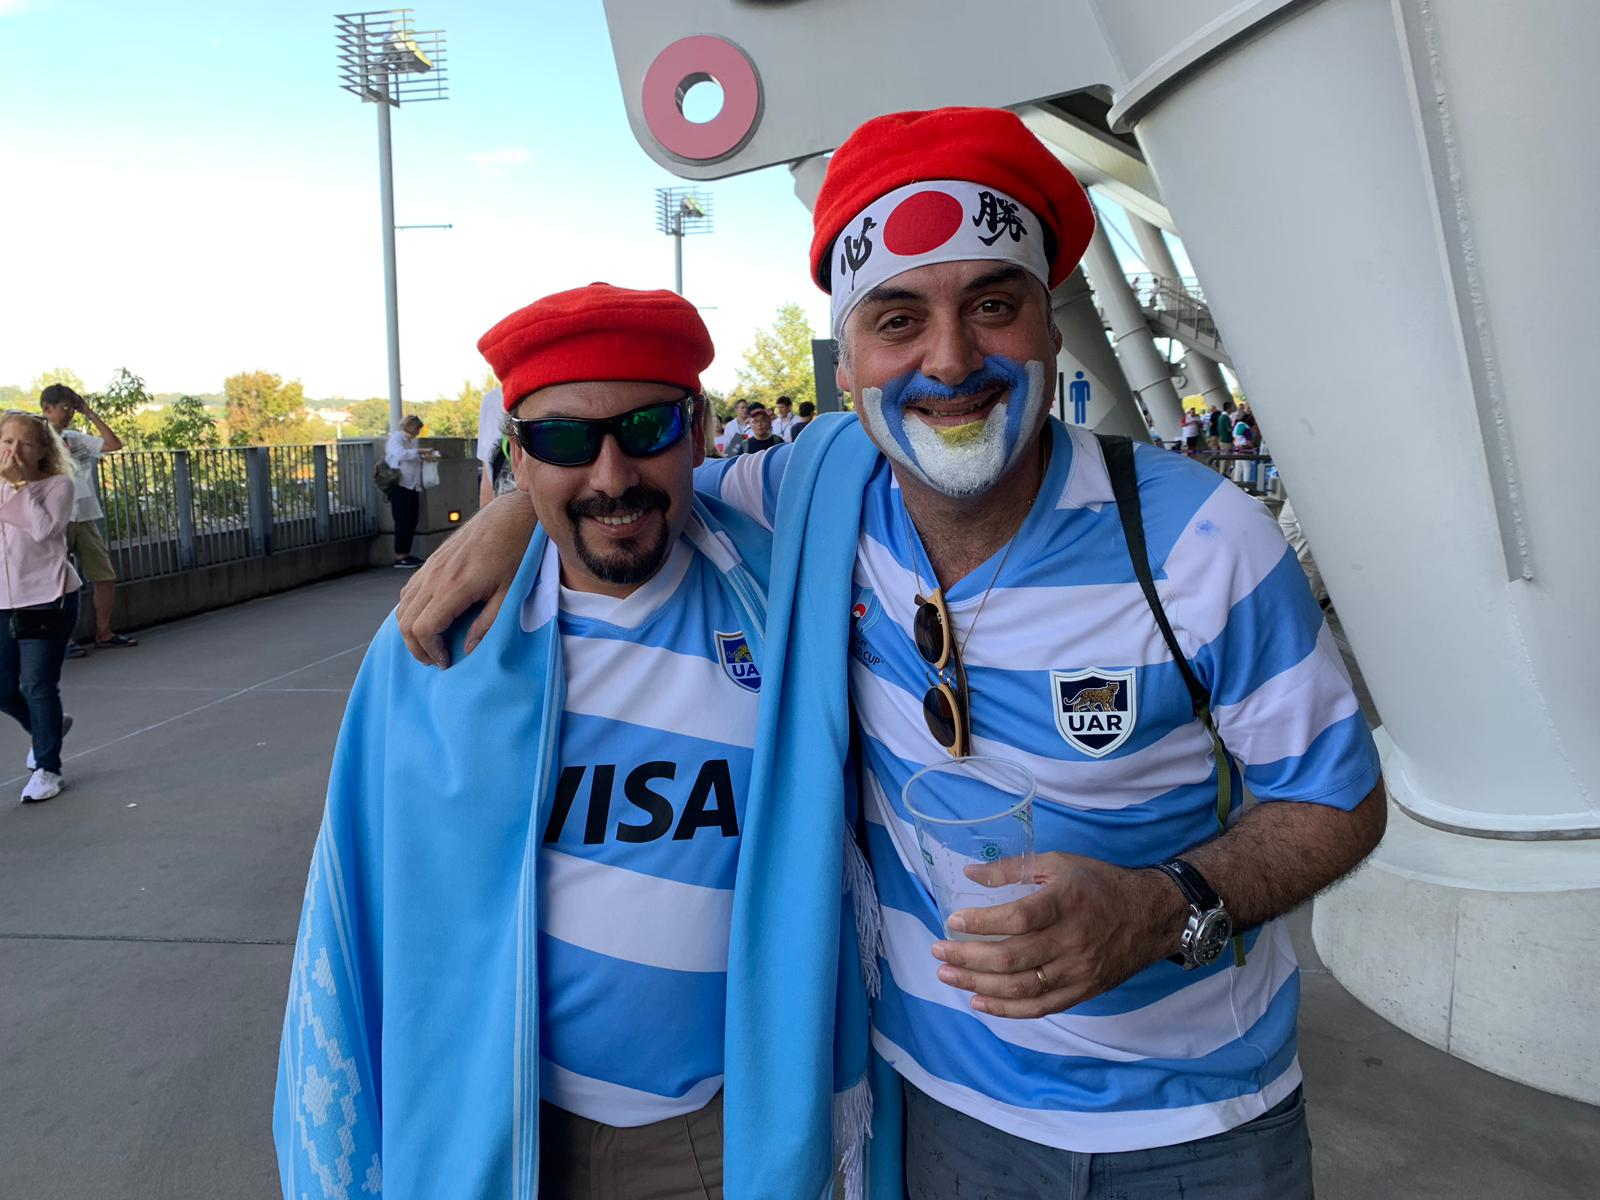 Connecting with Rugby fans from all over the world!